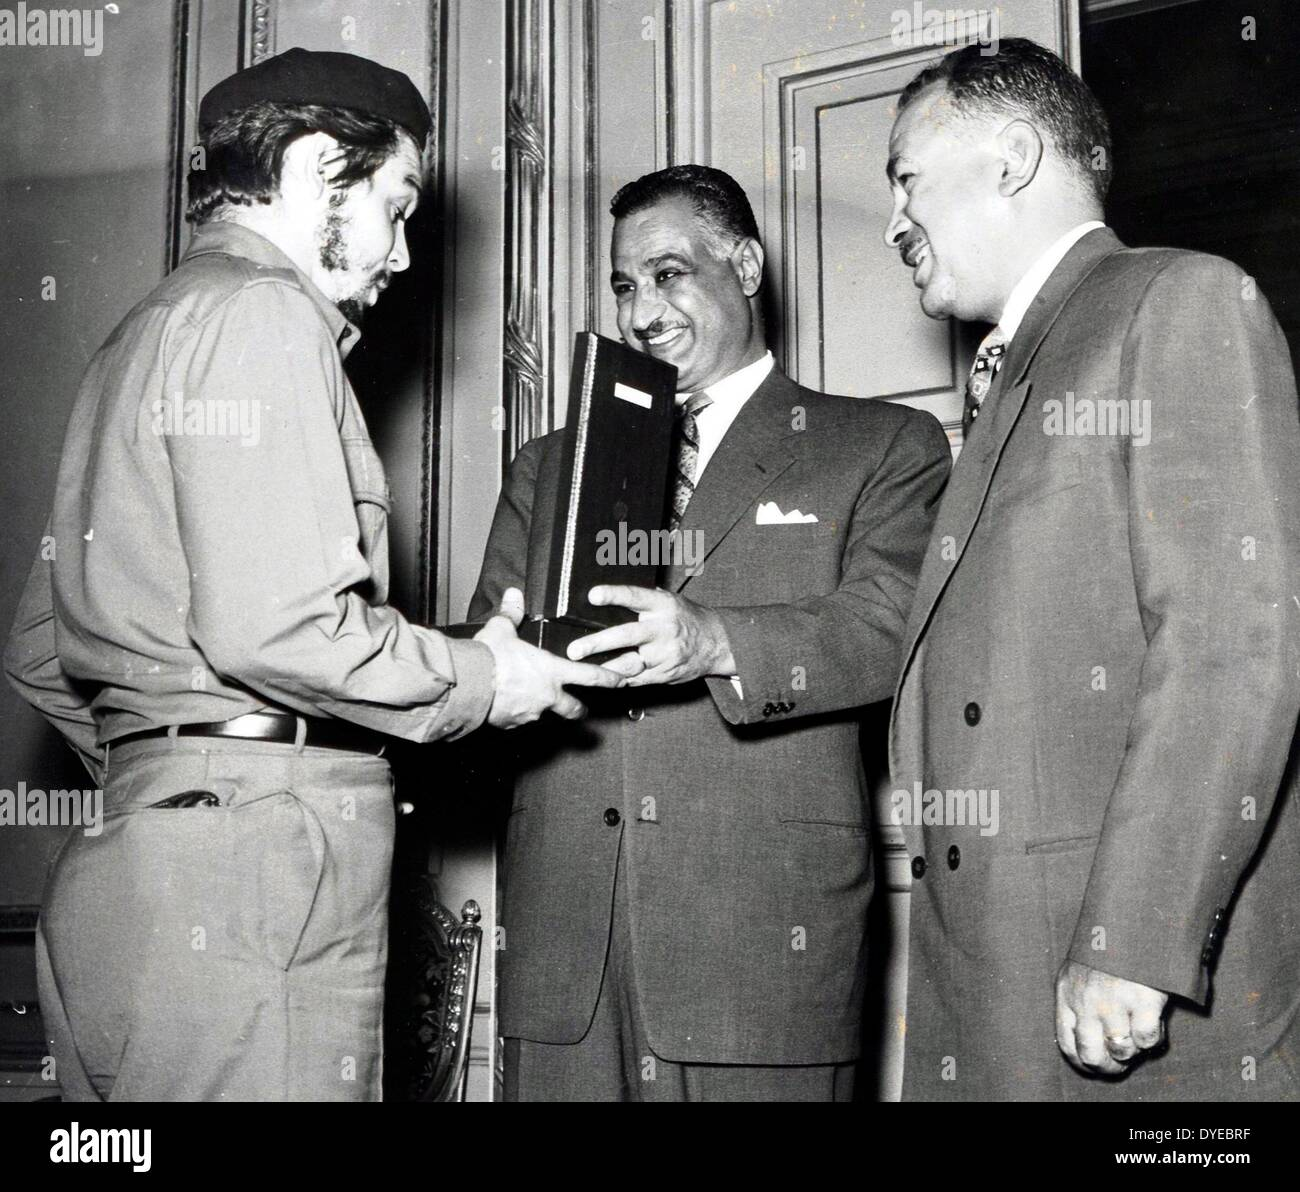 Left to right: Che Guevara Cuban communist rebel leader with Gamal Abdul Nasser President of Egypt and Vice president - Stock Image